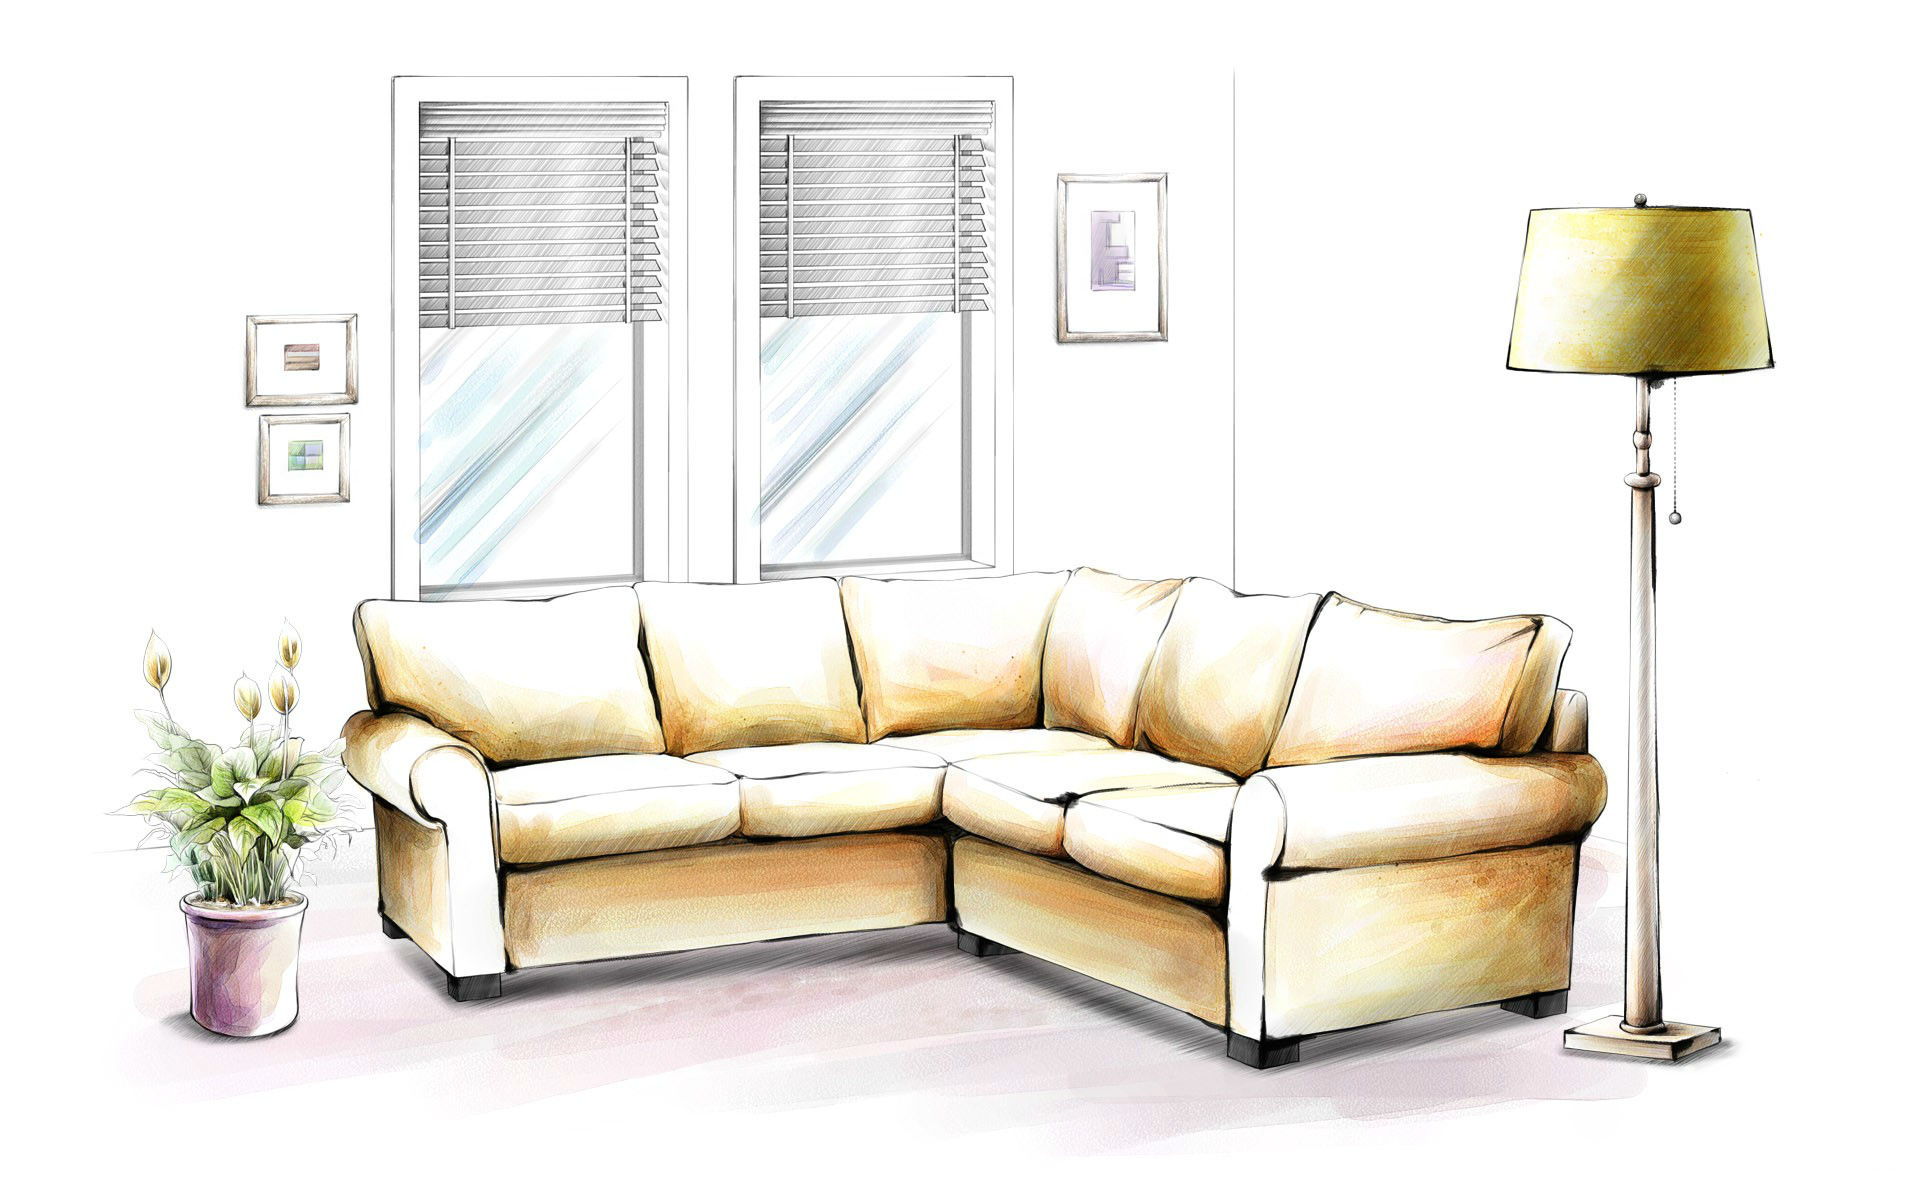 Furniture full hd wallpaper and background image for Interior designs drawings